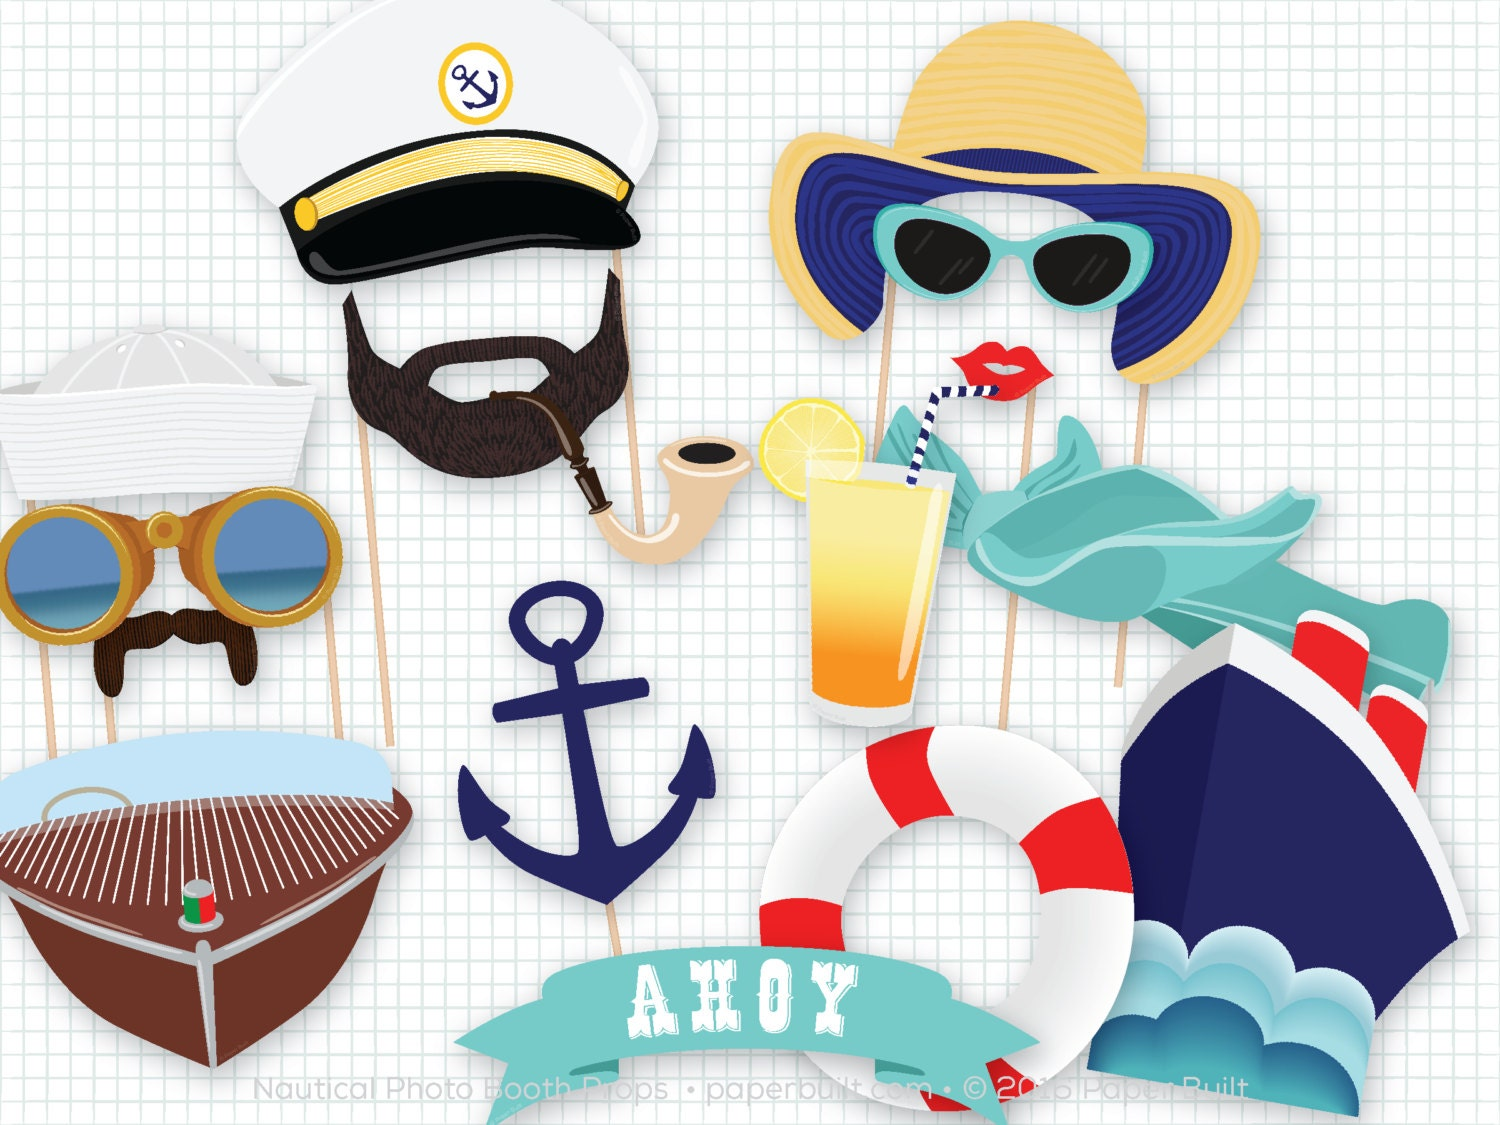 Nautical Photo Booth Photo Booth Props Cruise Photobooth